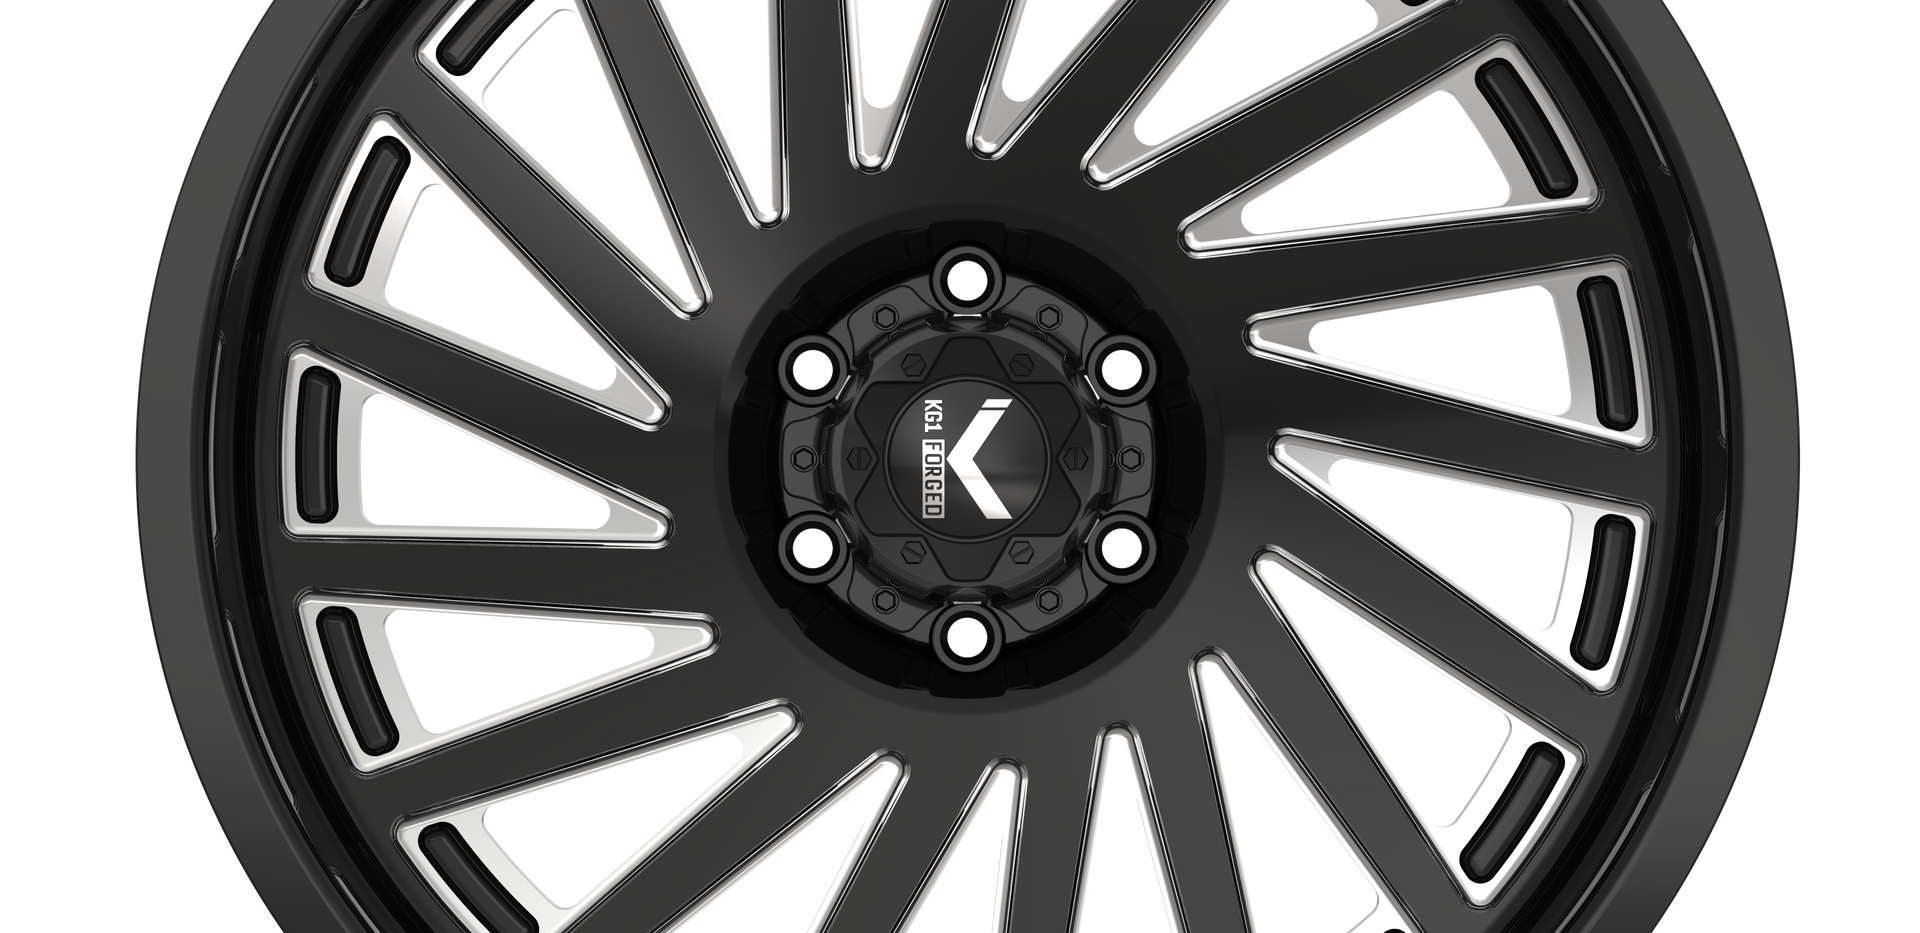 BOOST KC006L-2212-6H- Black Machining-1.